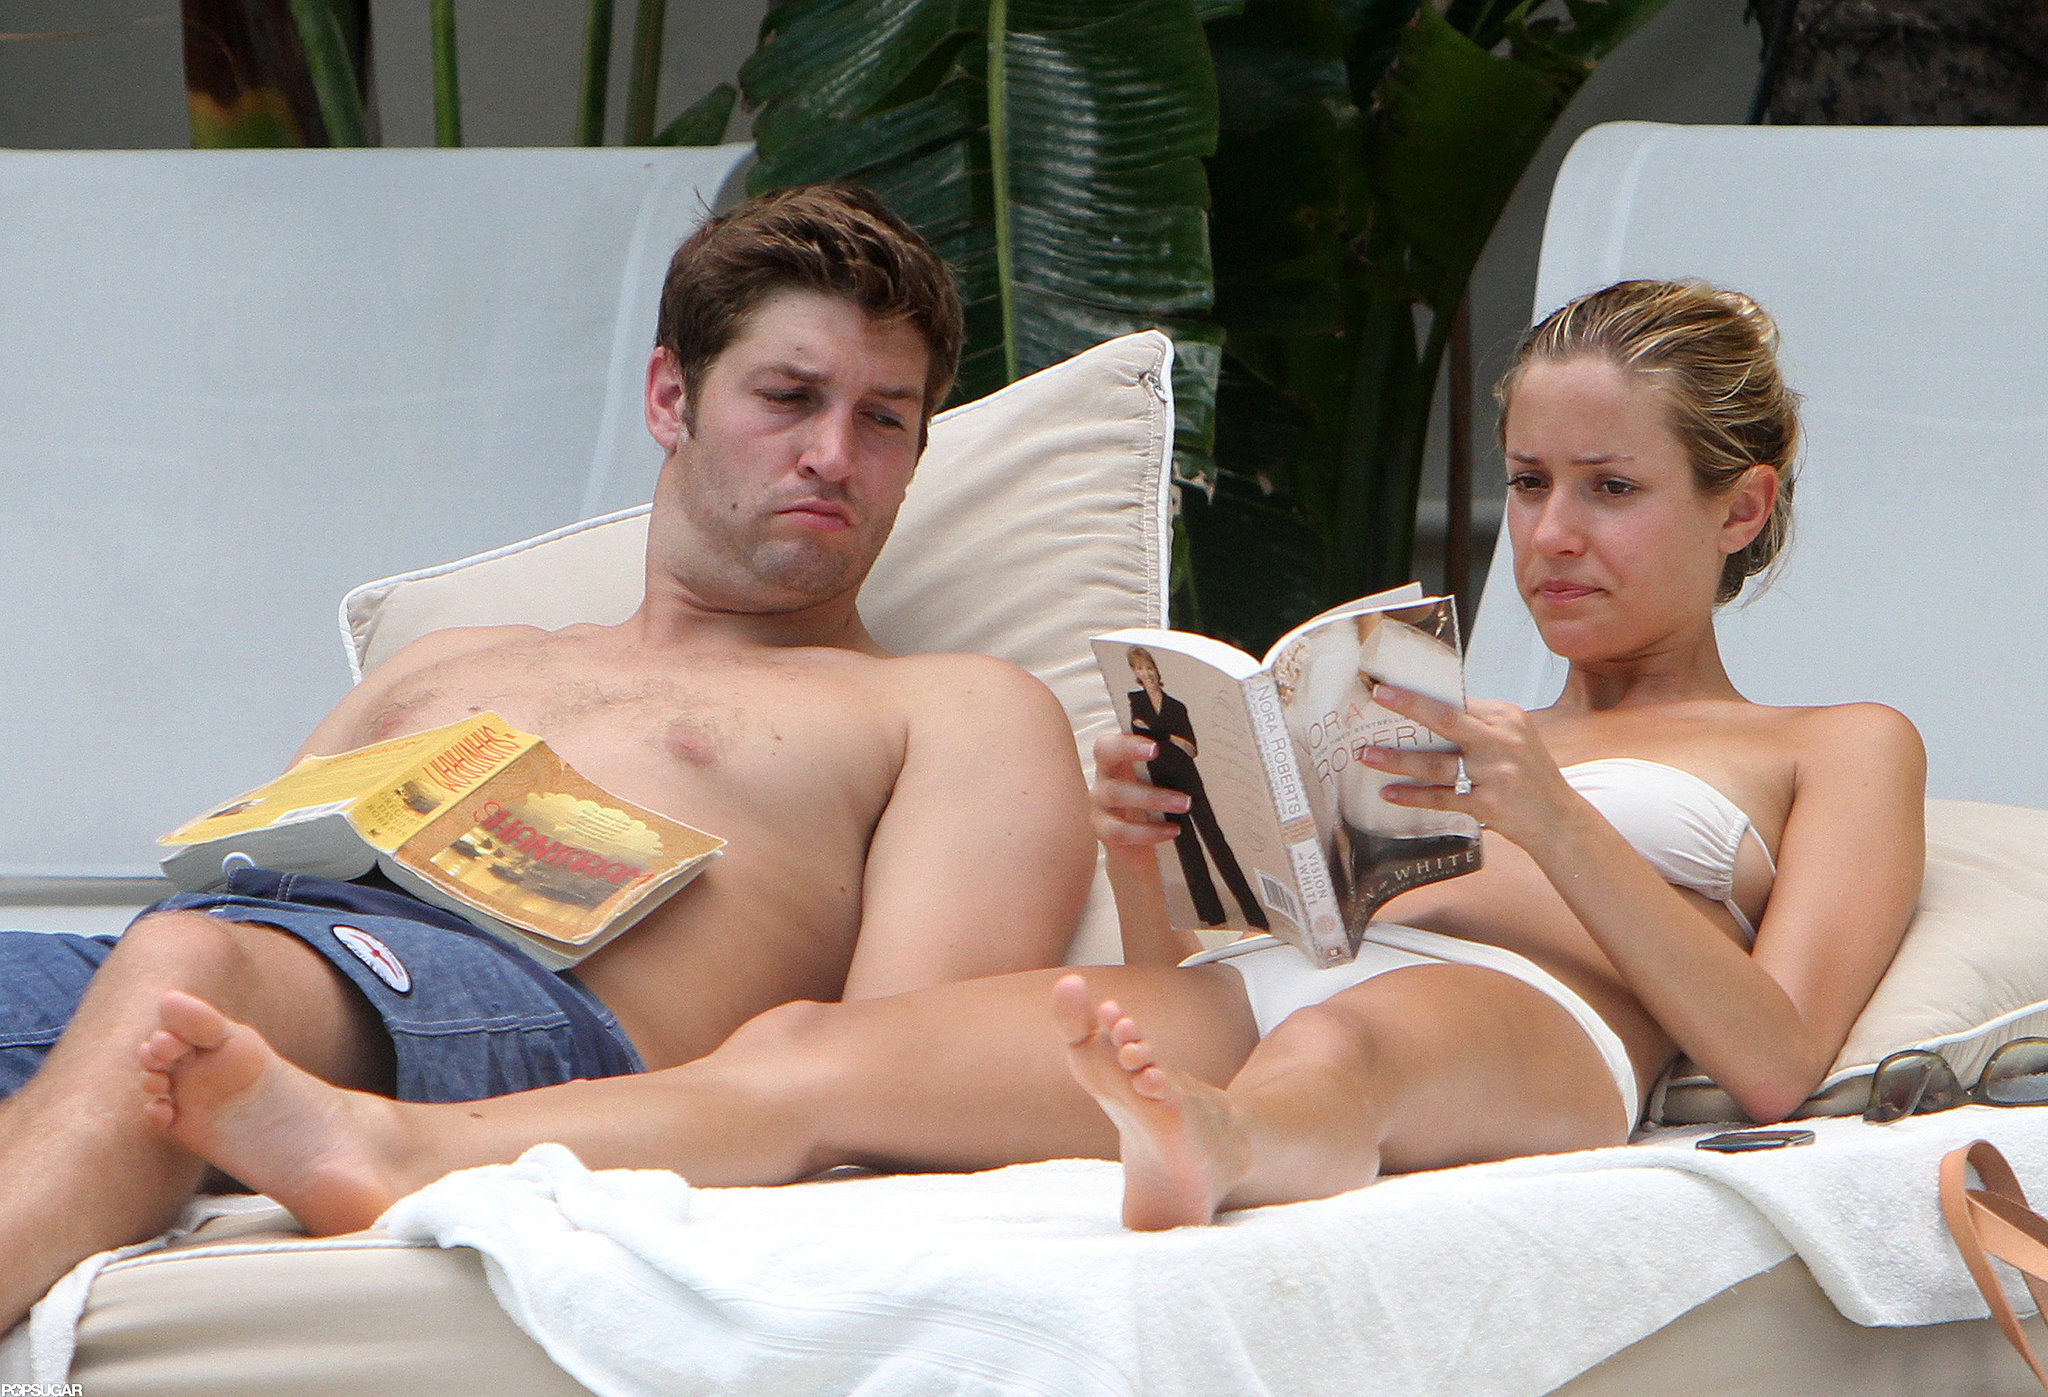 In July of 2011, Kristin Cavallari read Nora Roberts's Vision in White while her fiancé, Jay Cutler, caught up on Shantaram.